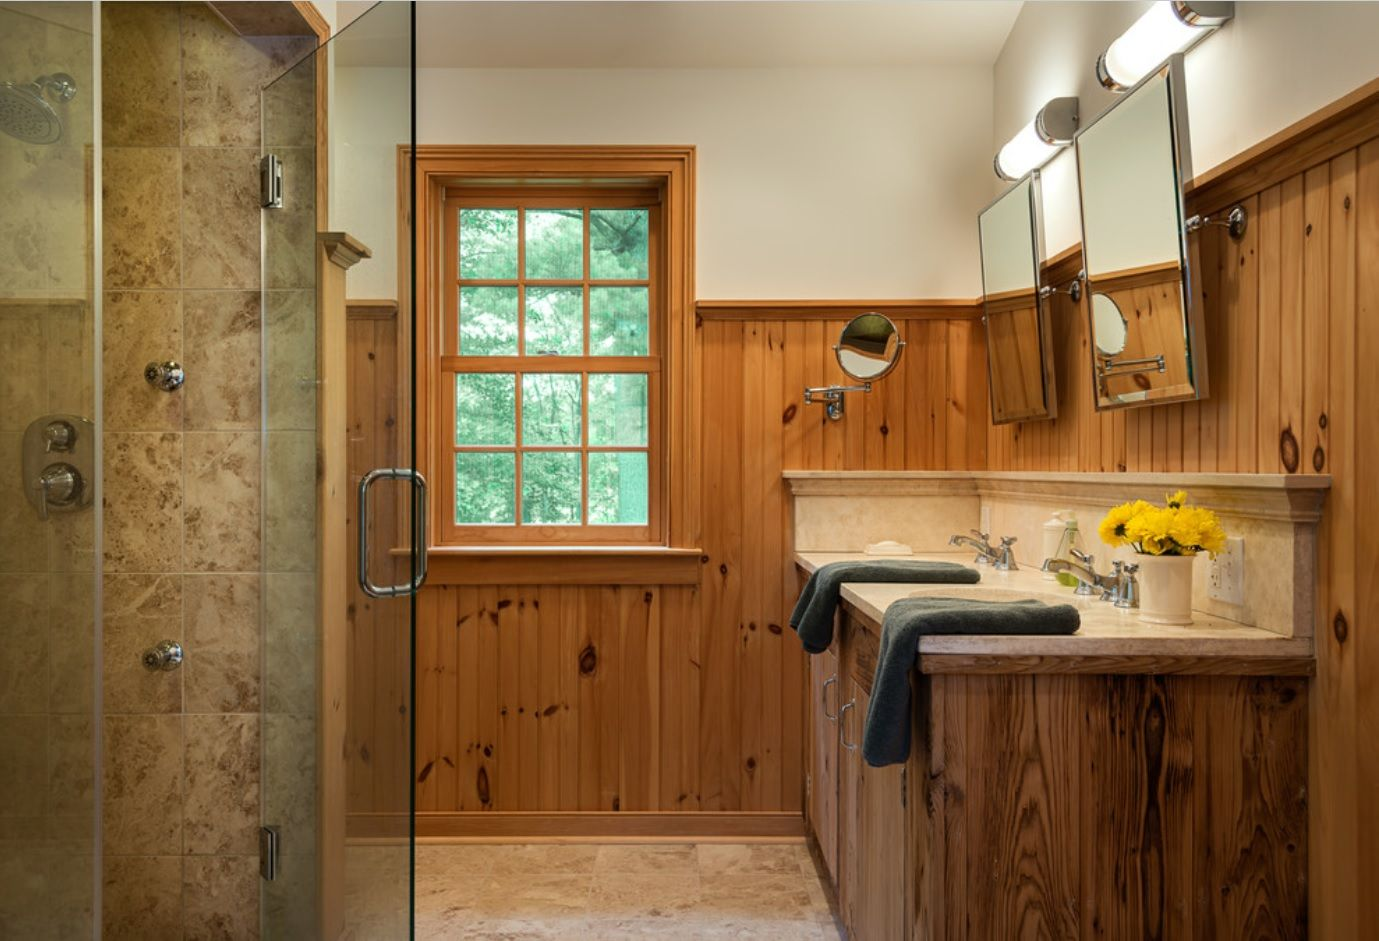 Bathroom with Wainscoting Design Ideas. Light wooden sheathing of the Contemporary interior